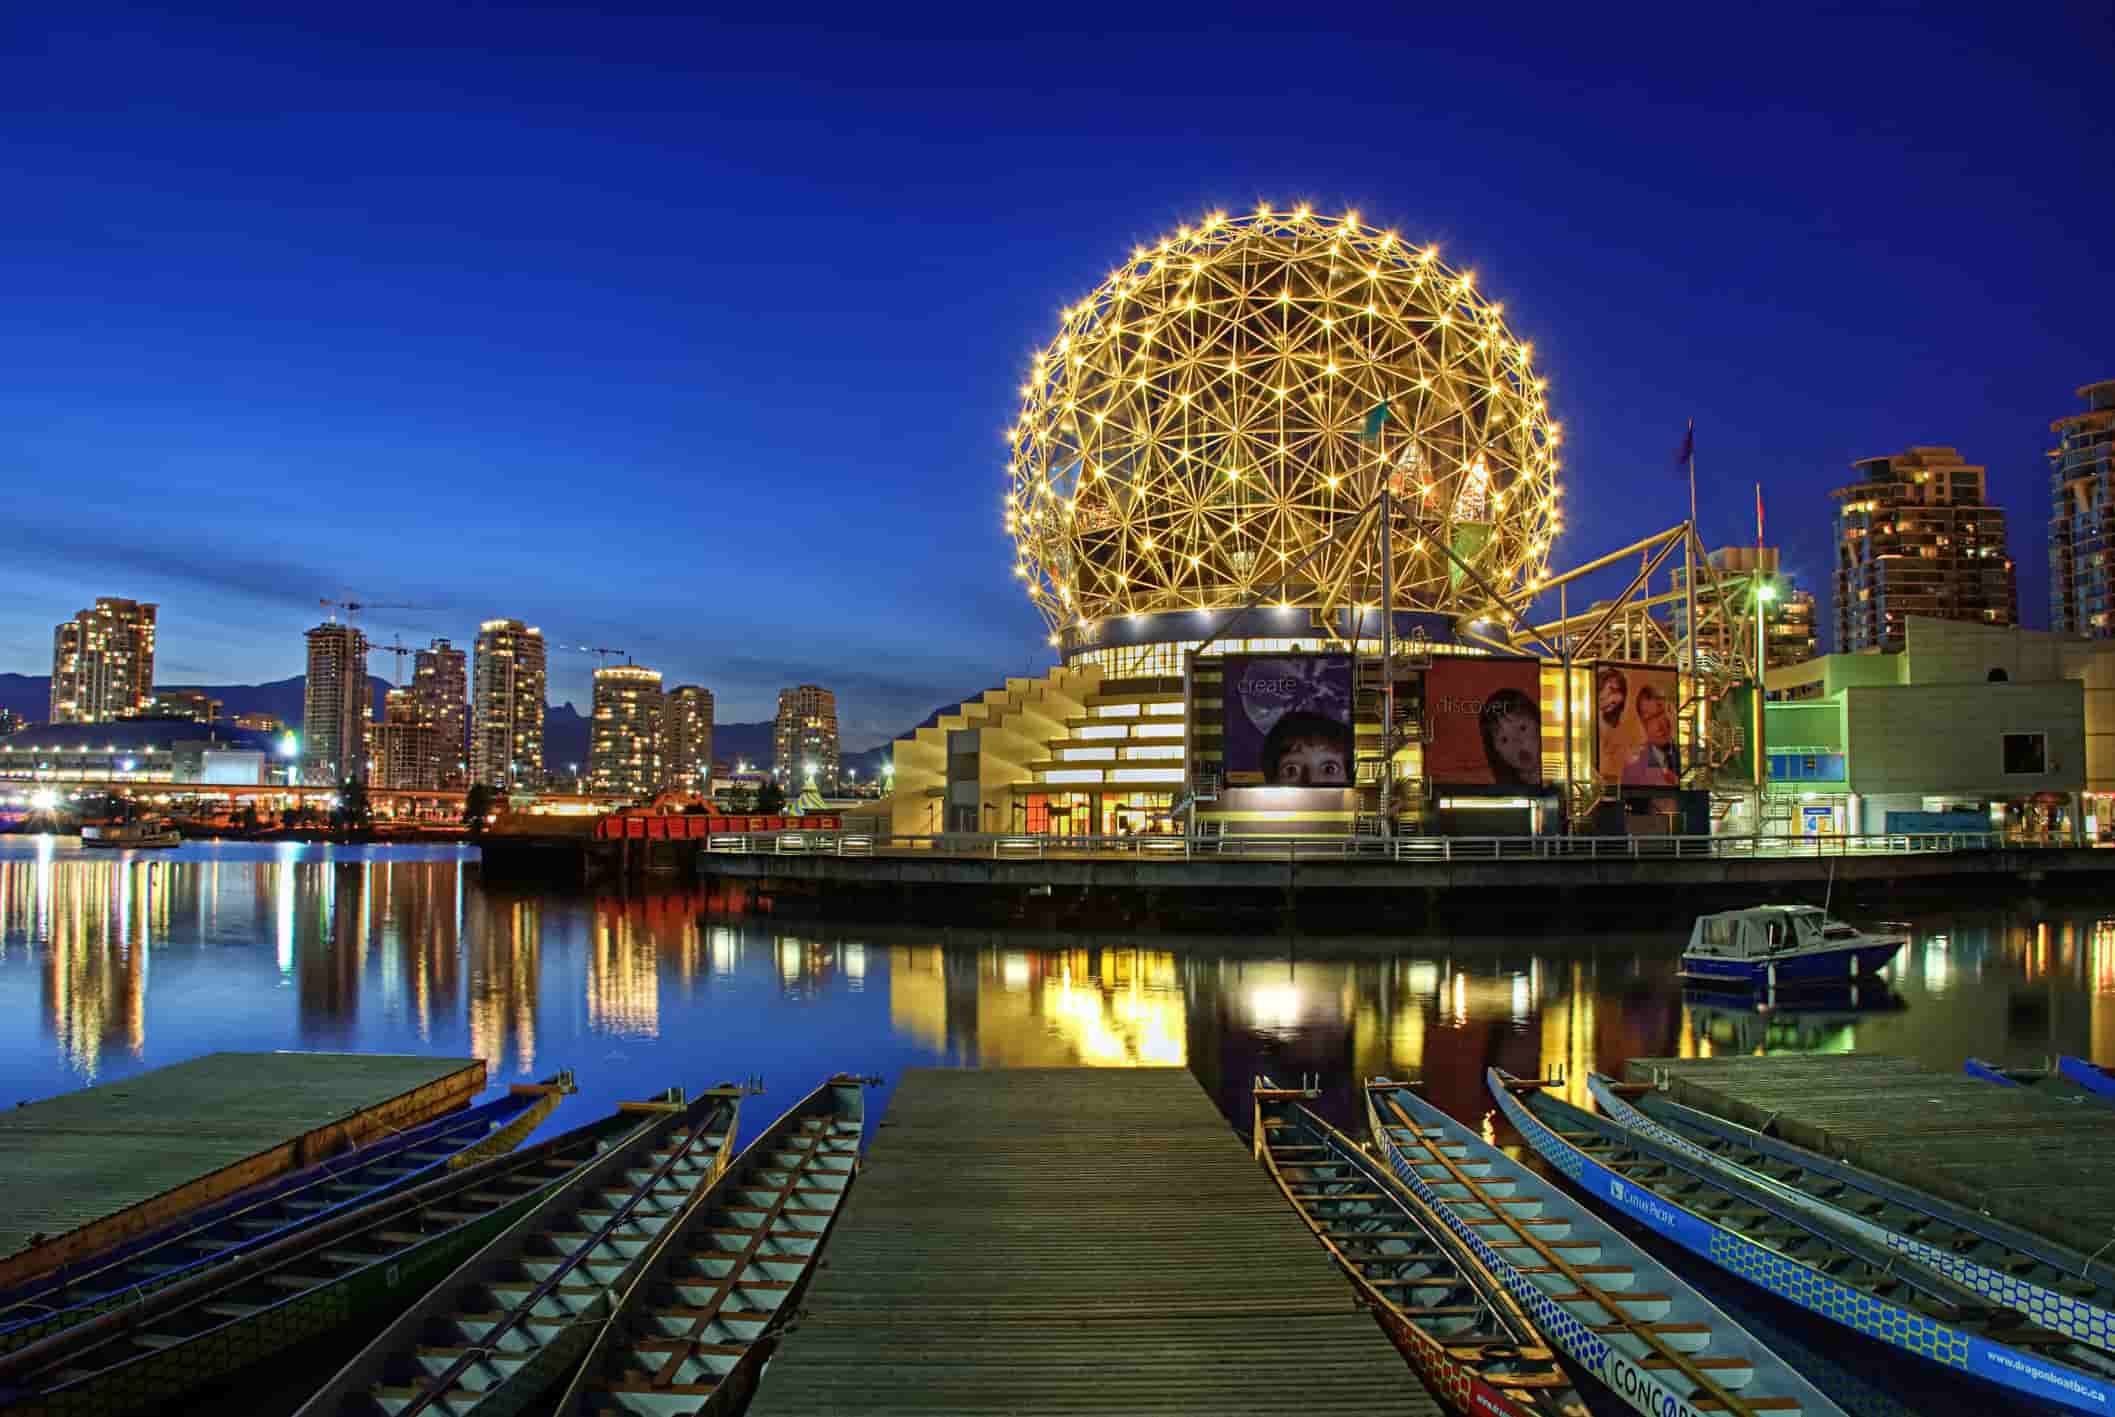 Vancouver, Canada at night